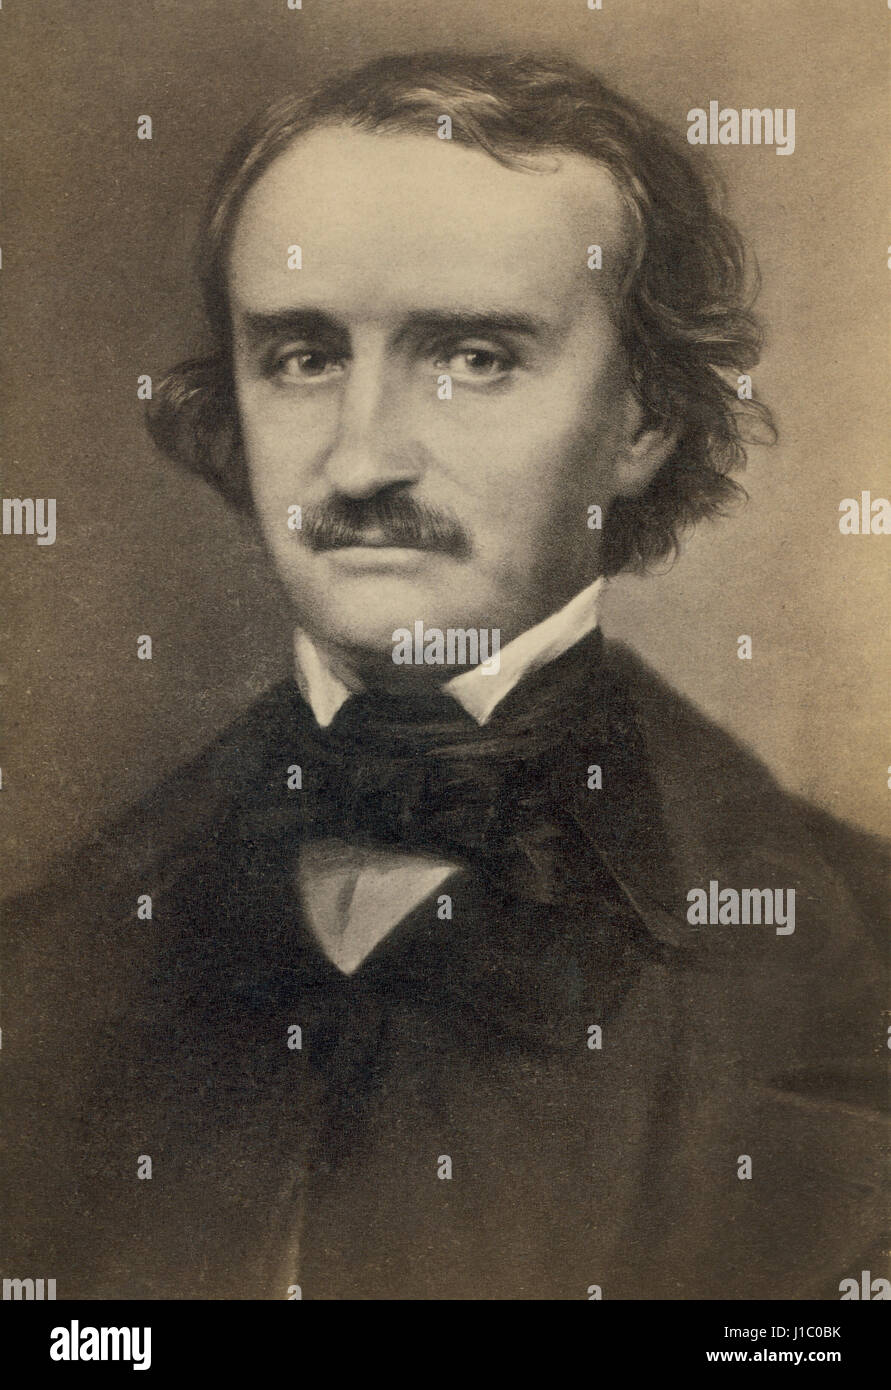 Edgar Allan Poe (1809-49), American Author and Poet, Portrait, 1840's - Stock Image